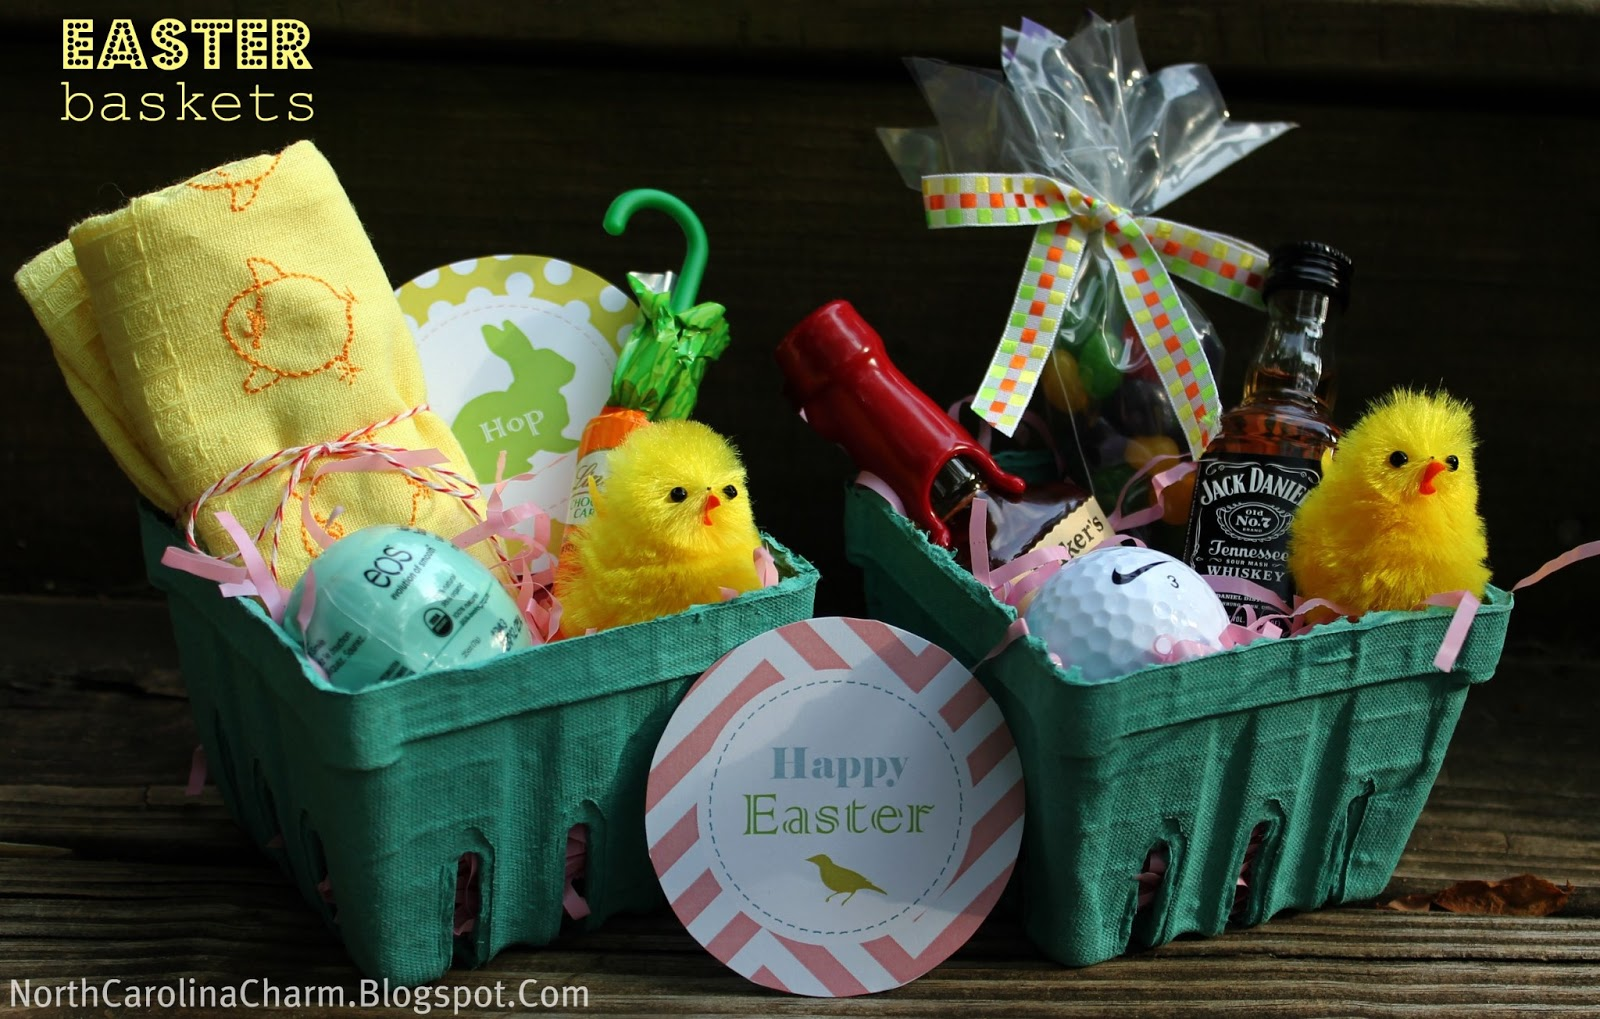 Easter basket blog hop carolina charm and since i am late in the game this year stuffing my easter baskets i am showing off my 2012 baskets negle Images